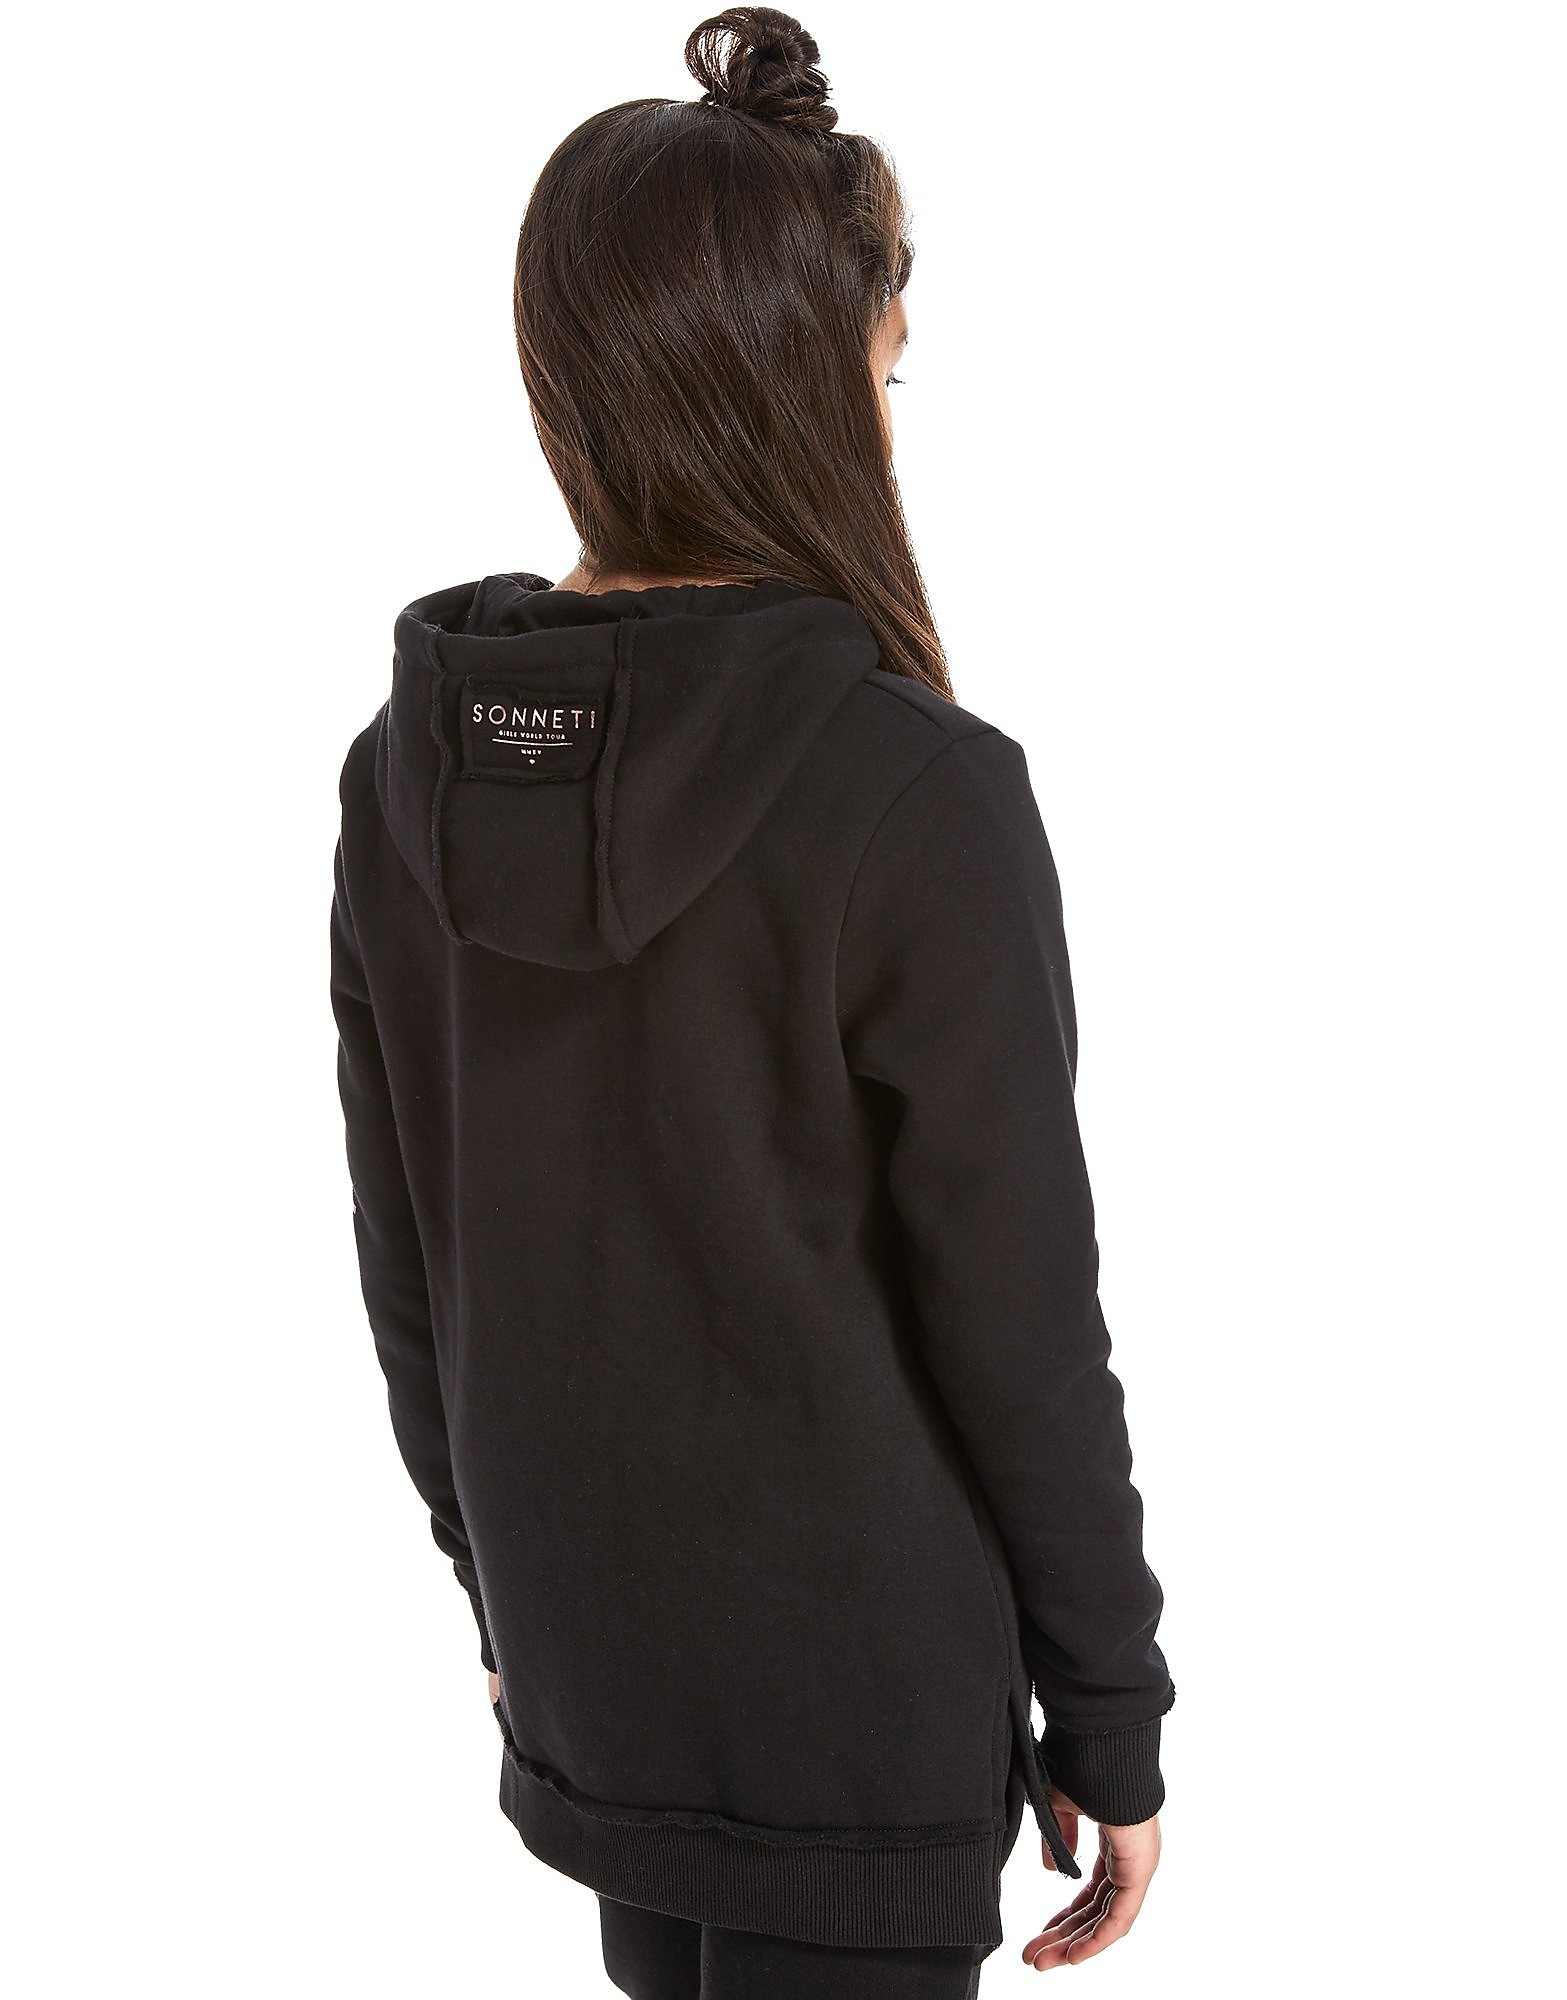 Sonneti chaqueta Girls' Raw Zip Through júnior